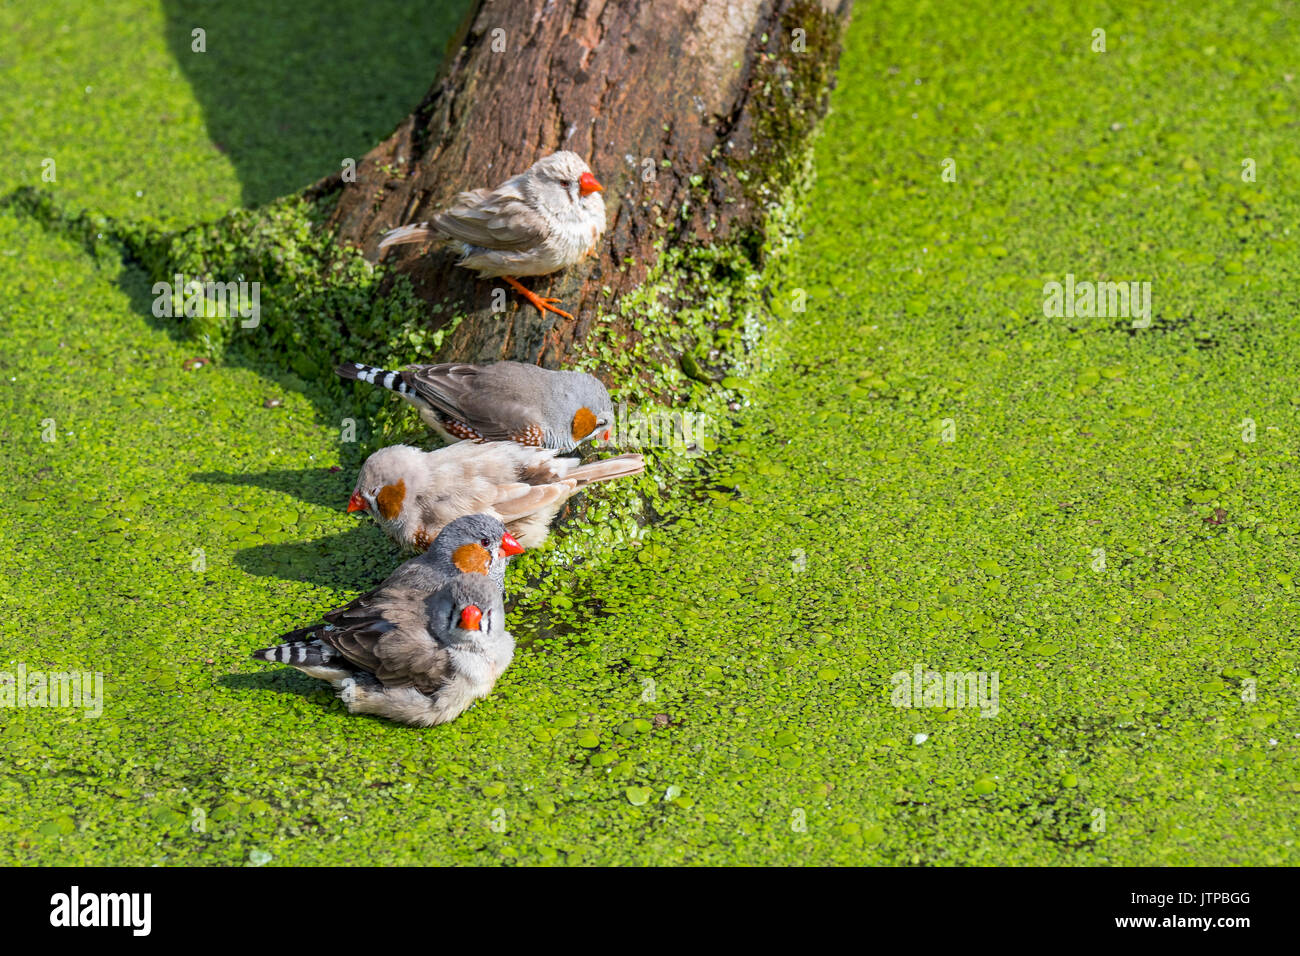 Male and female zebra finches (Taeniopygia guttata / Poephila guttata) native to Australia bathing and drinking water from pond on a hot day - Stock Image